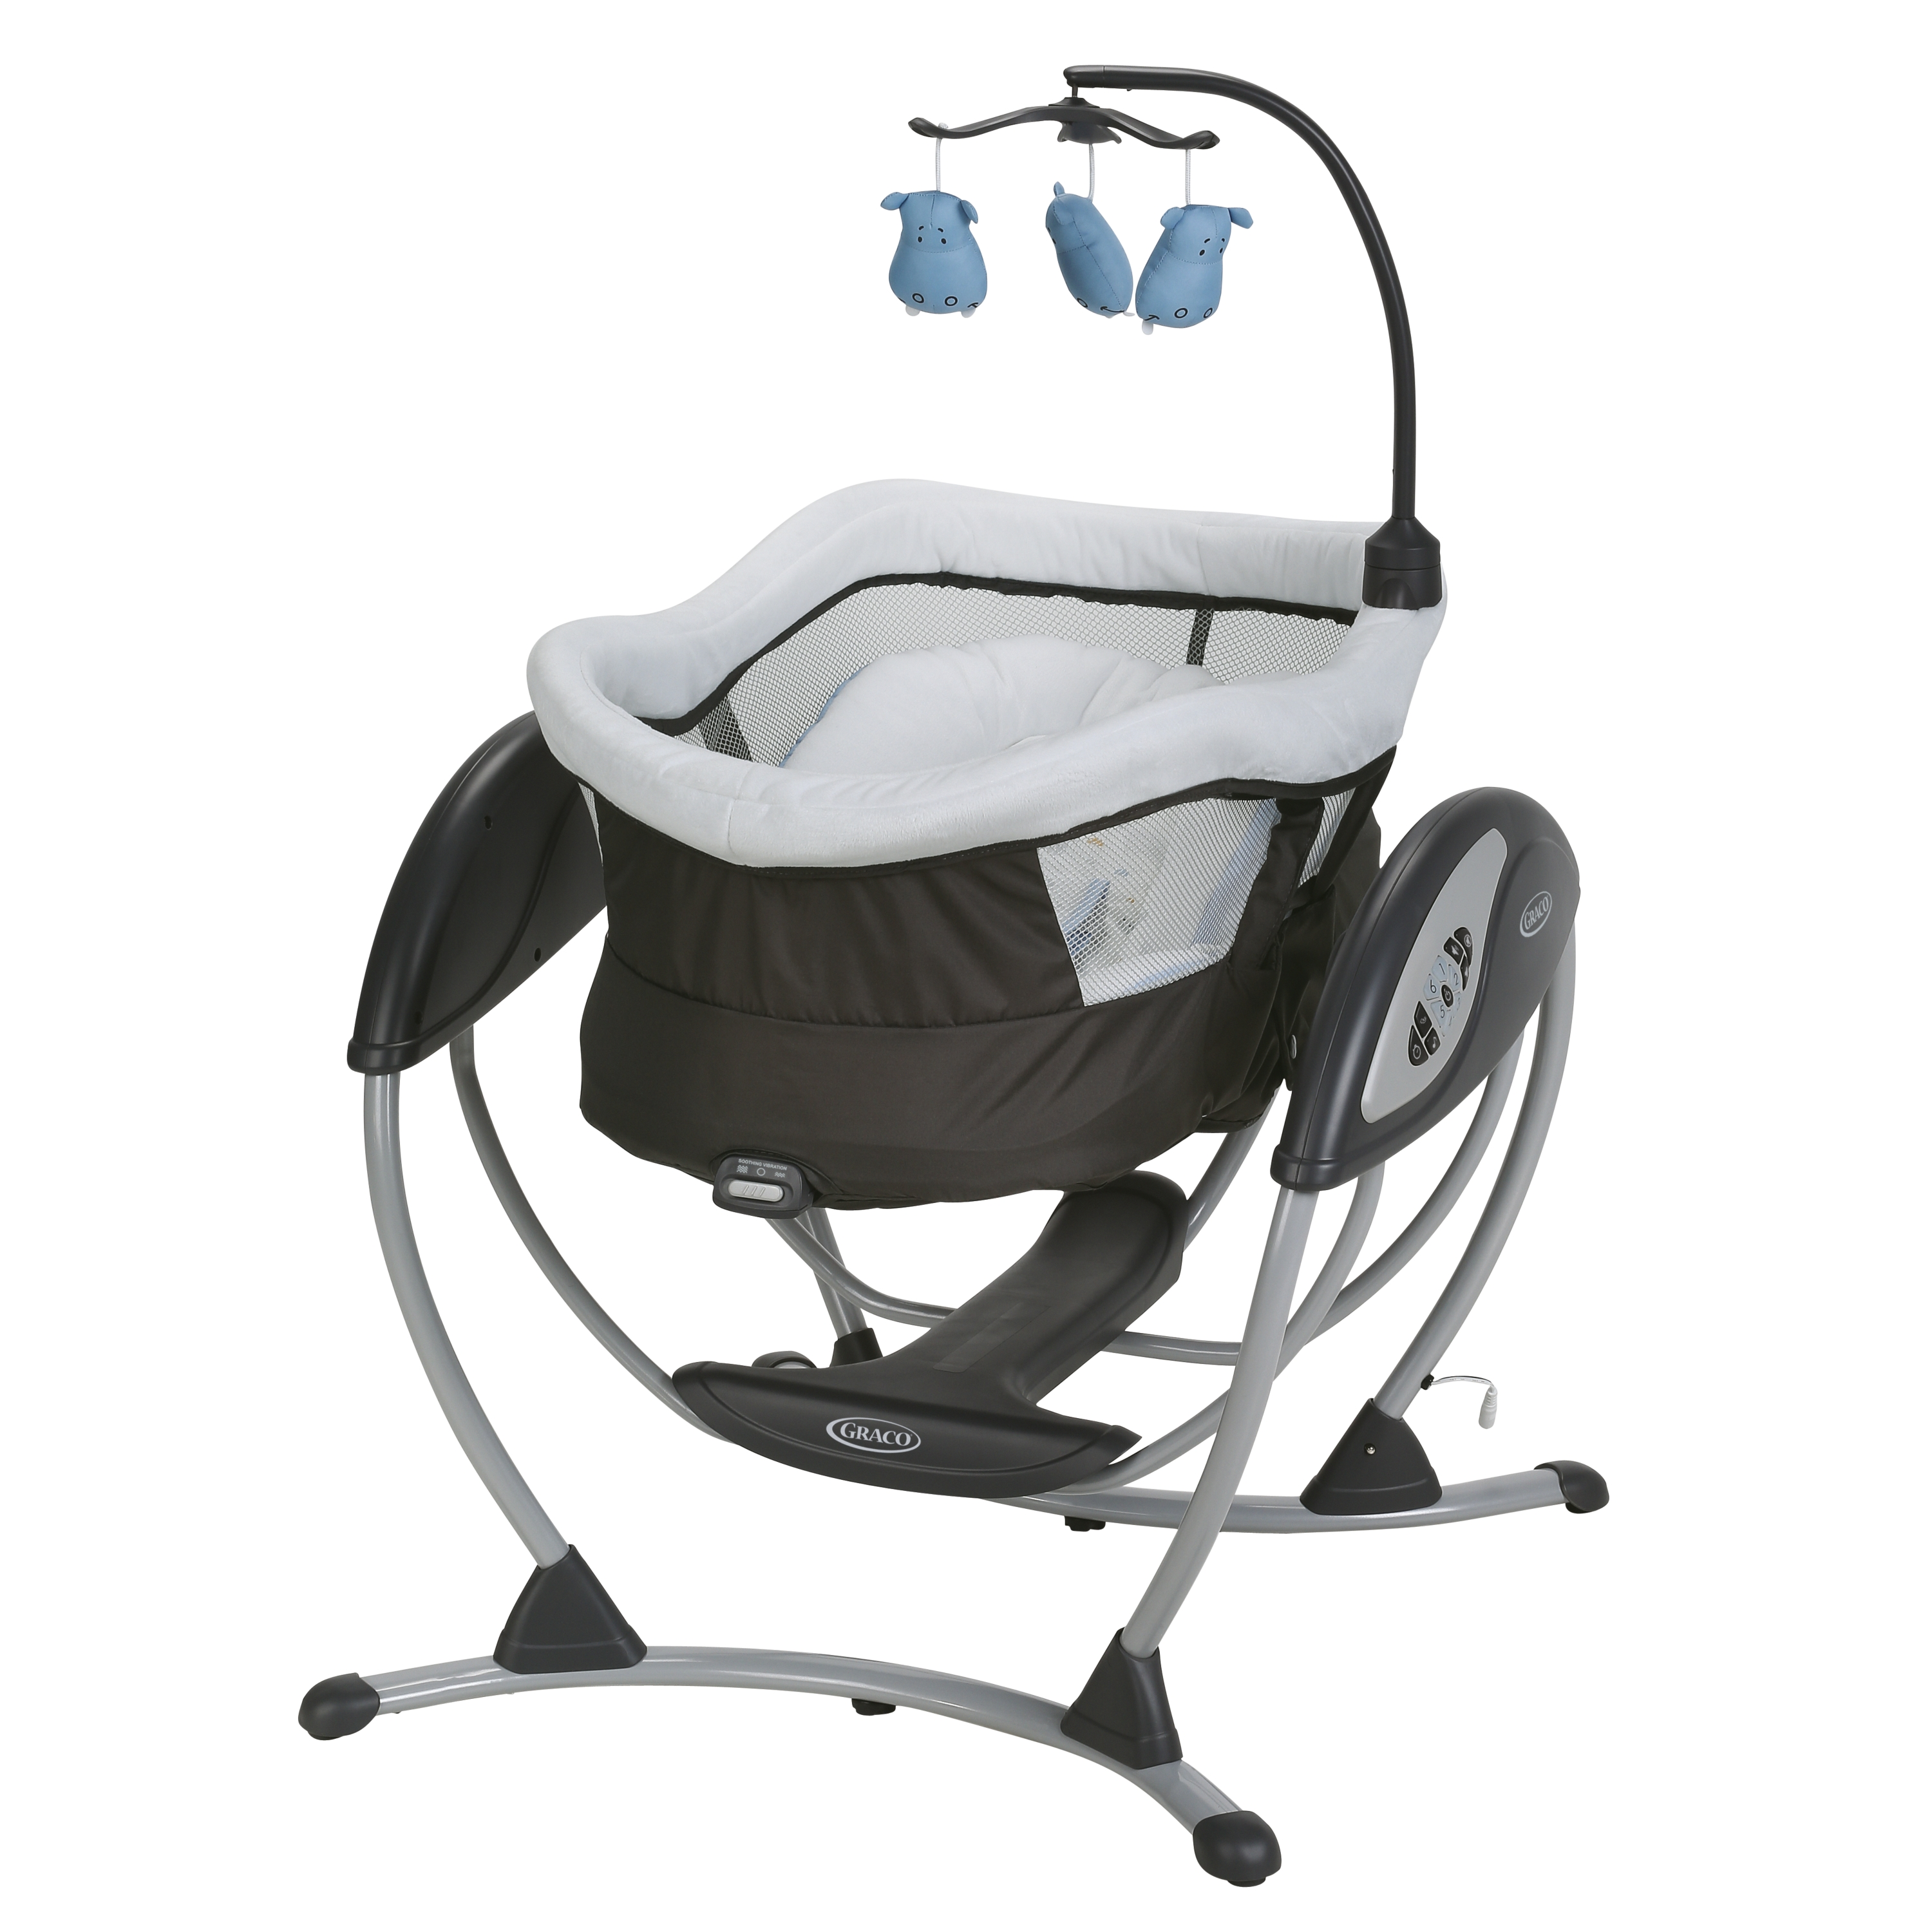 Graco® DreamGlider® Gliding Seat and Sleeper